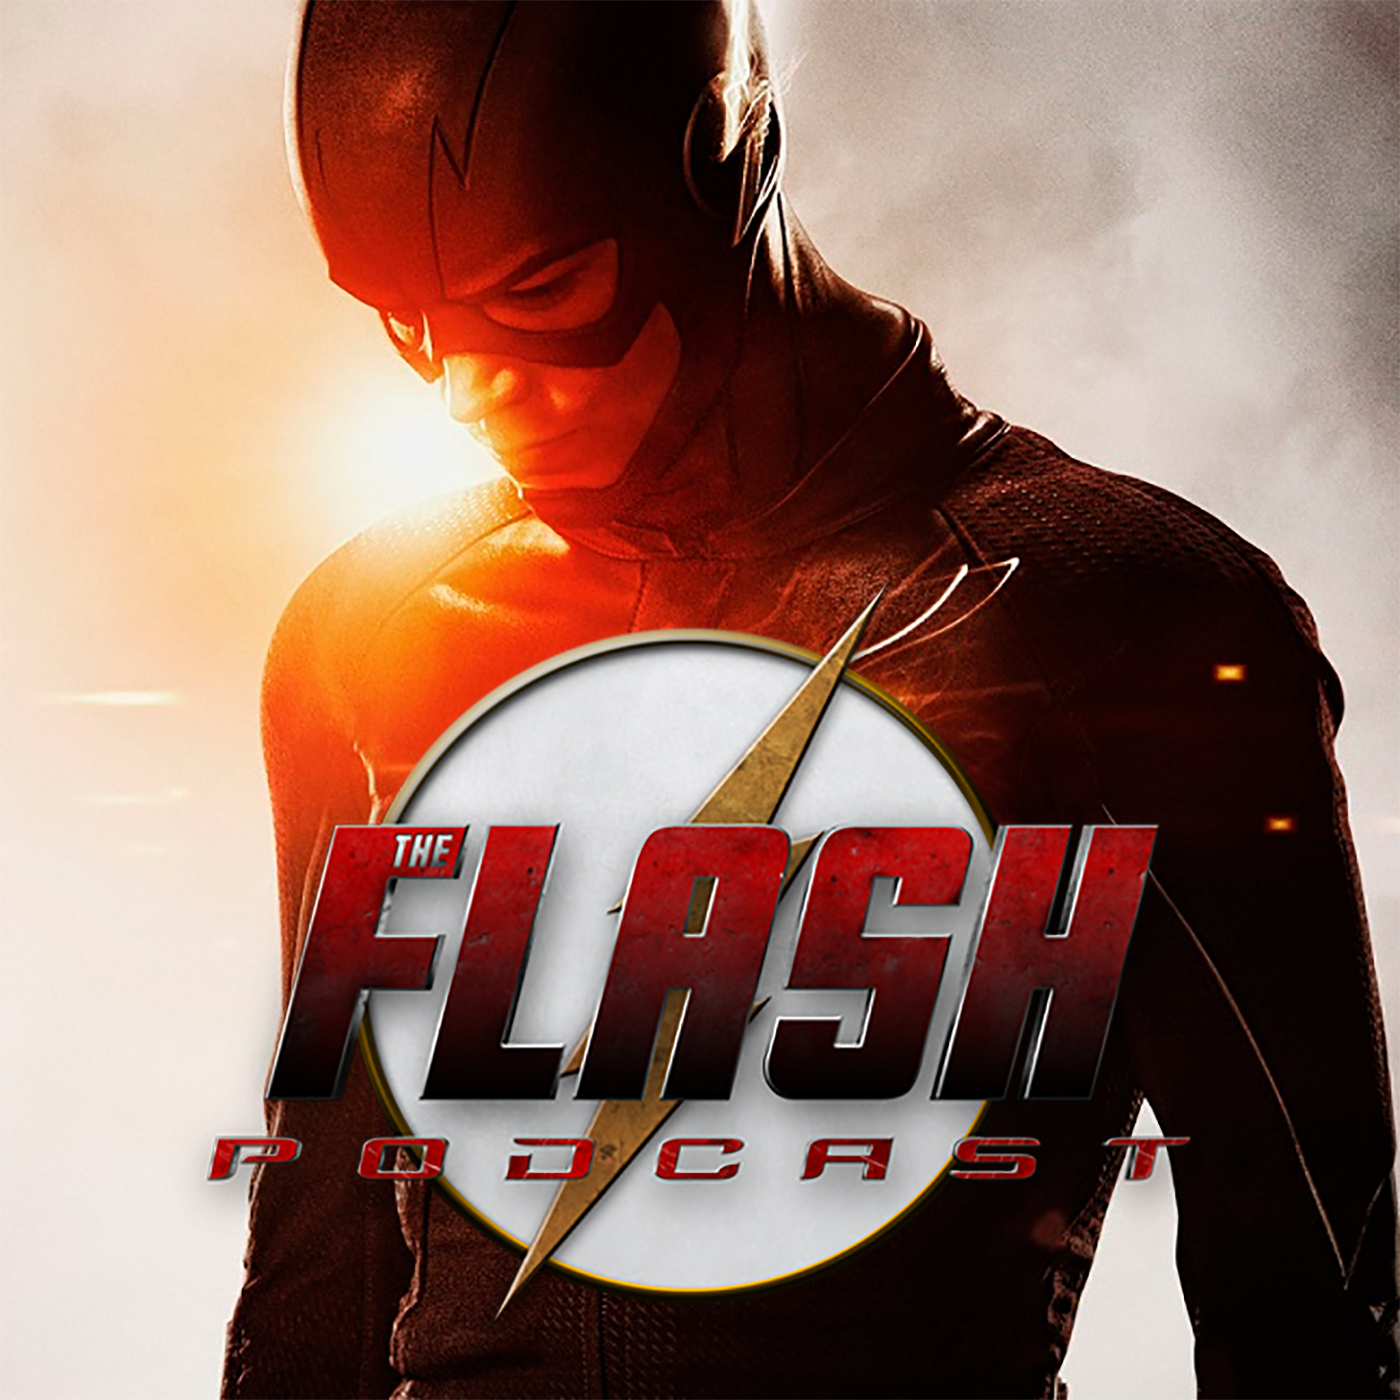 The Flash Podcast Season 1.5 – Joe West in Season 1